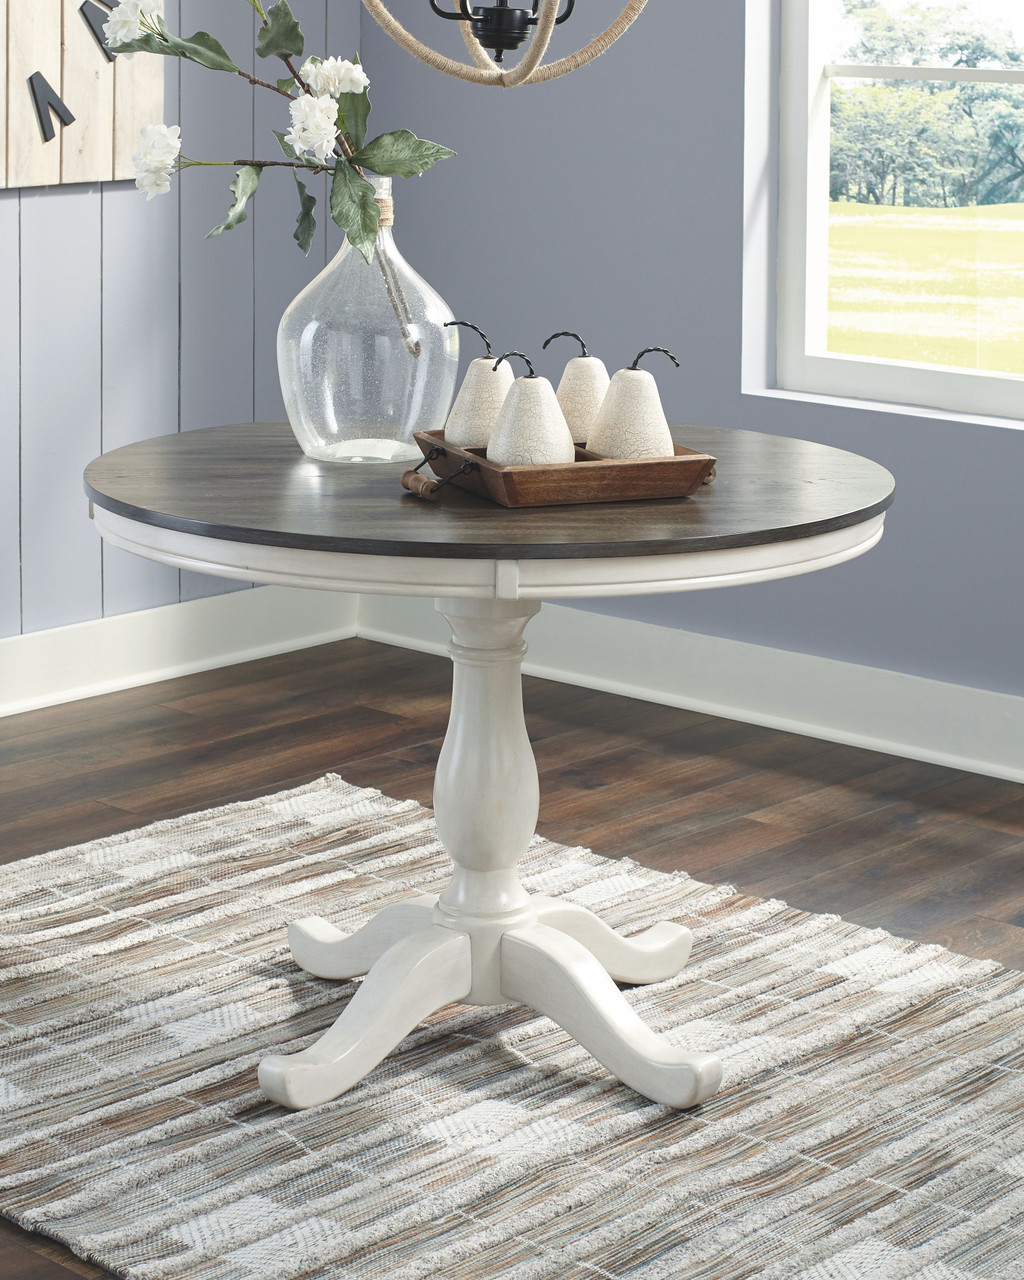 Nelling Two Tone Dining Room Table On Sale At American Furniture Of Slidell Serving Slidell La